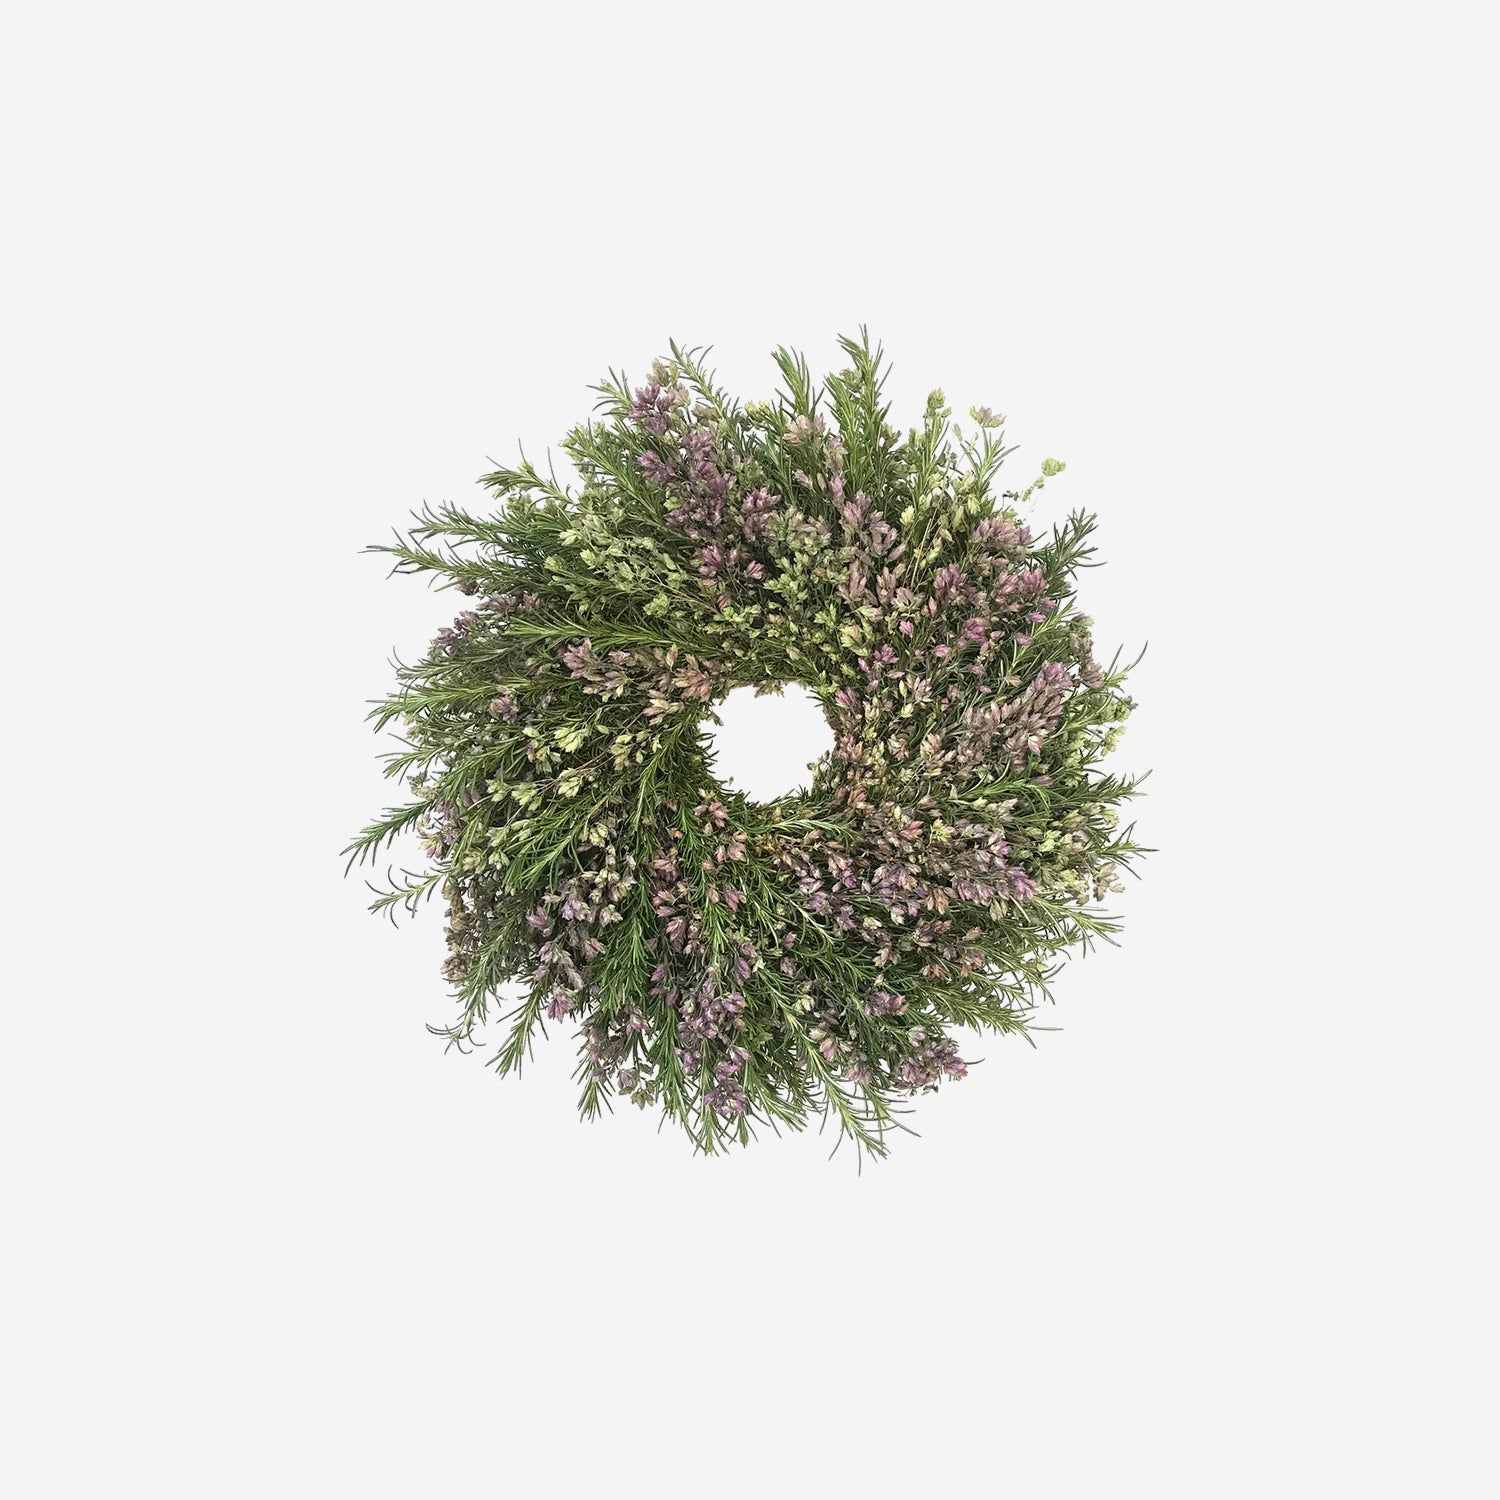 Rosemary and Dried Oregano Wreath